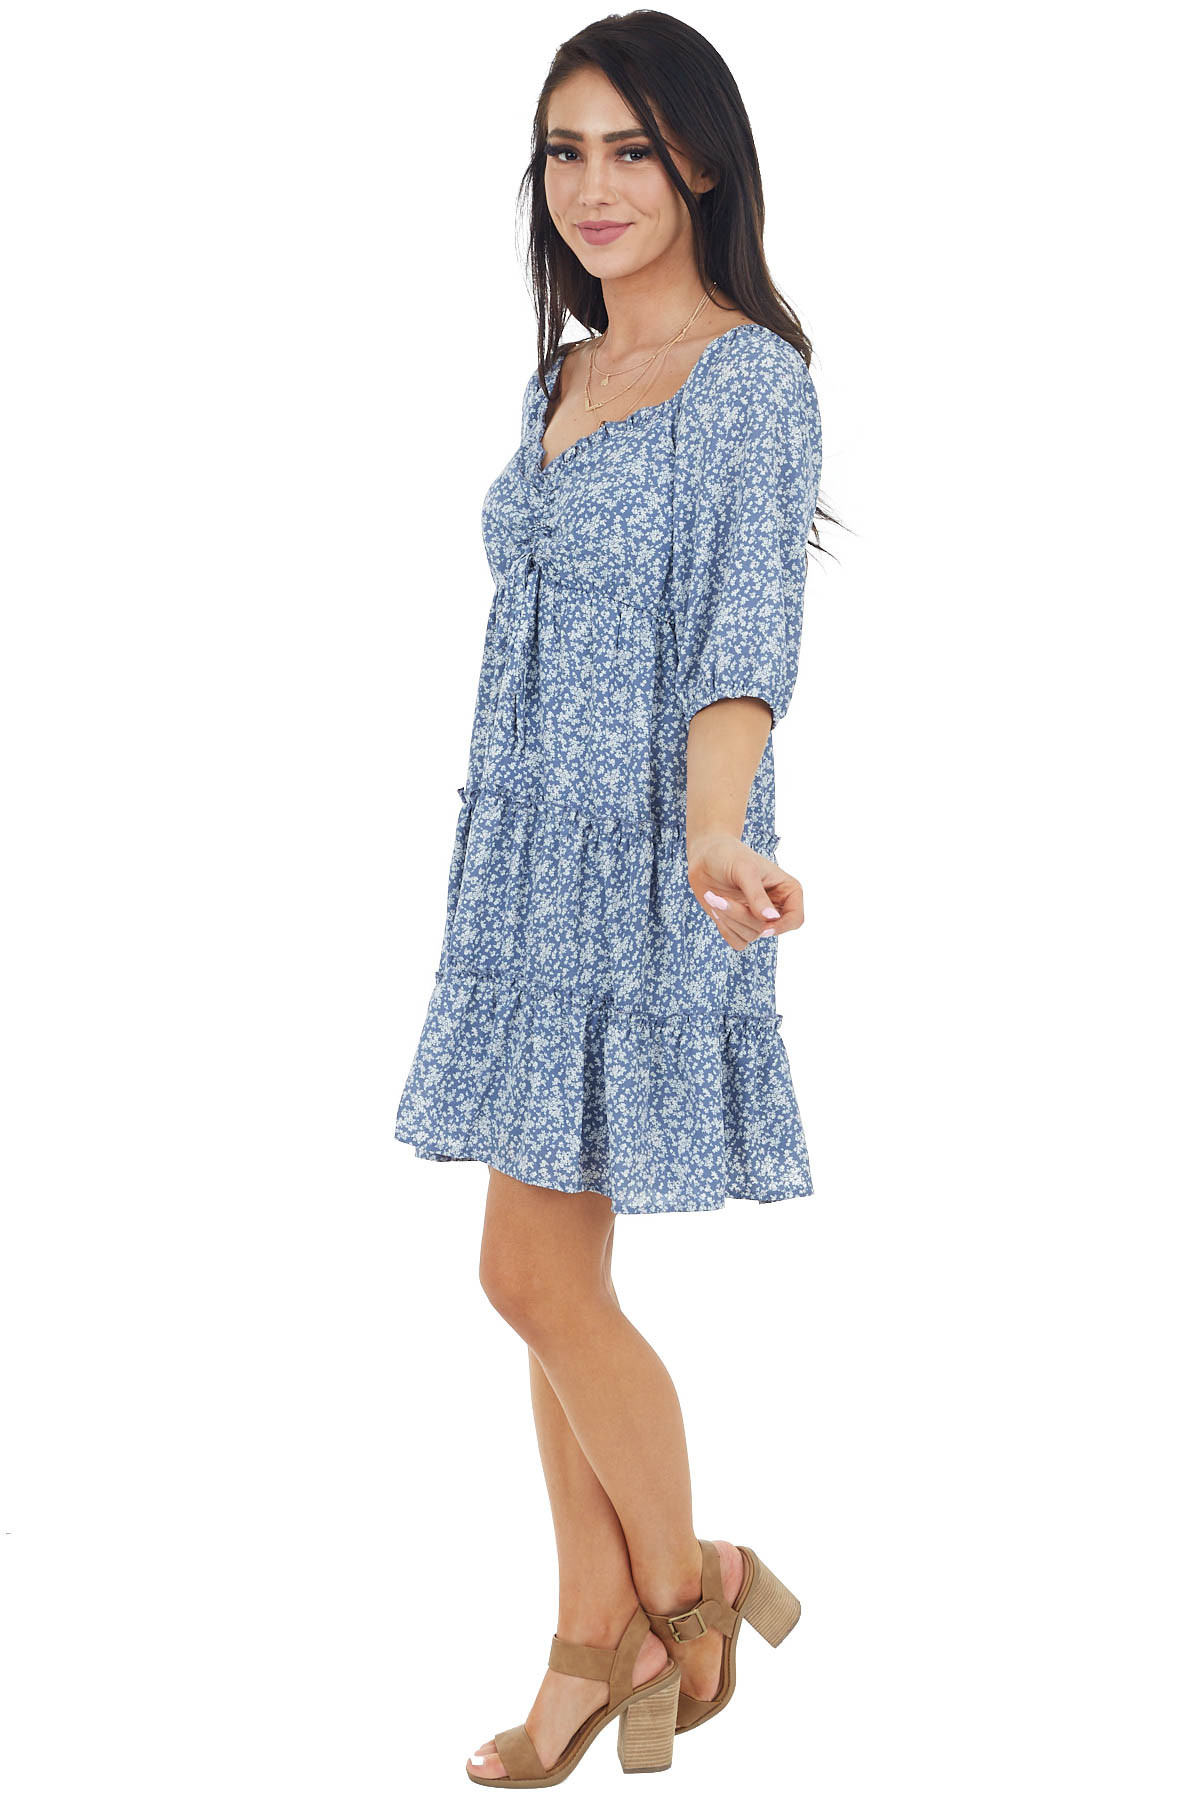 Slate Blue Floral Print Mini Tiered Dress with 3/4 Sleeves